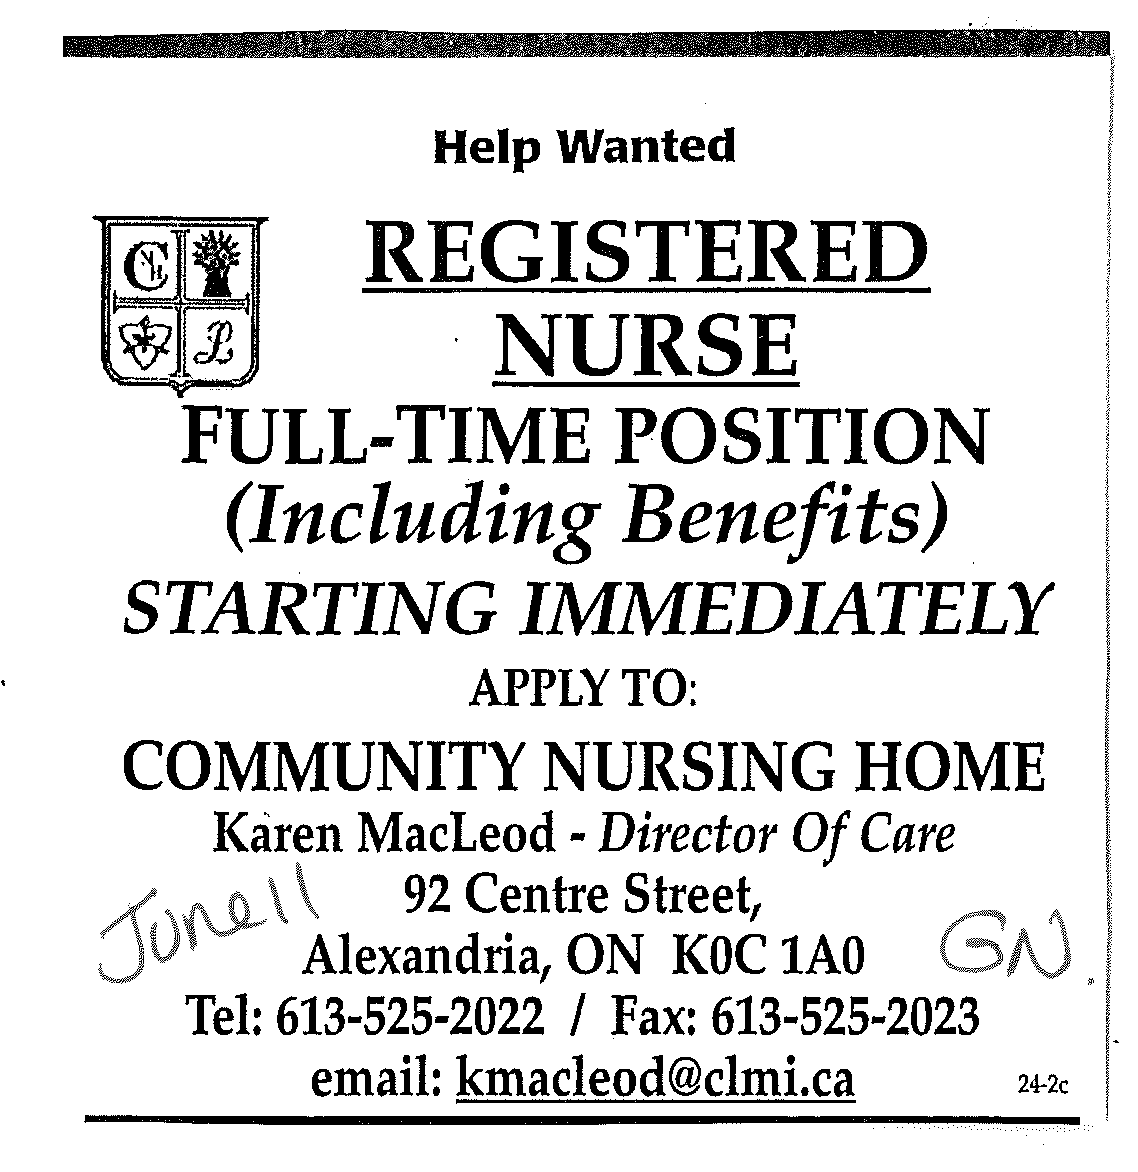 Job Posting For Registered Nurses Demande D Emploi Pour Infirmiere See Our Website For Other Jobs Voir Notre Sit Help Wanted Community Nursing How To Apply